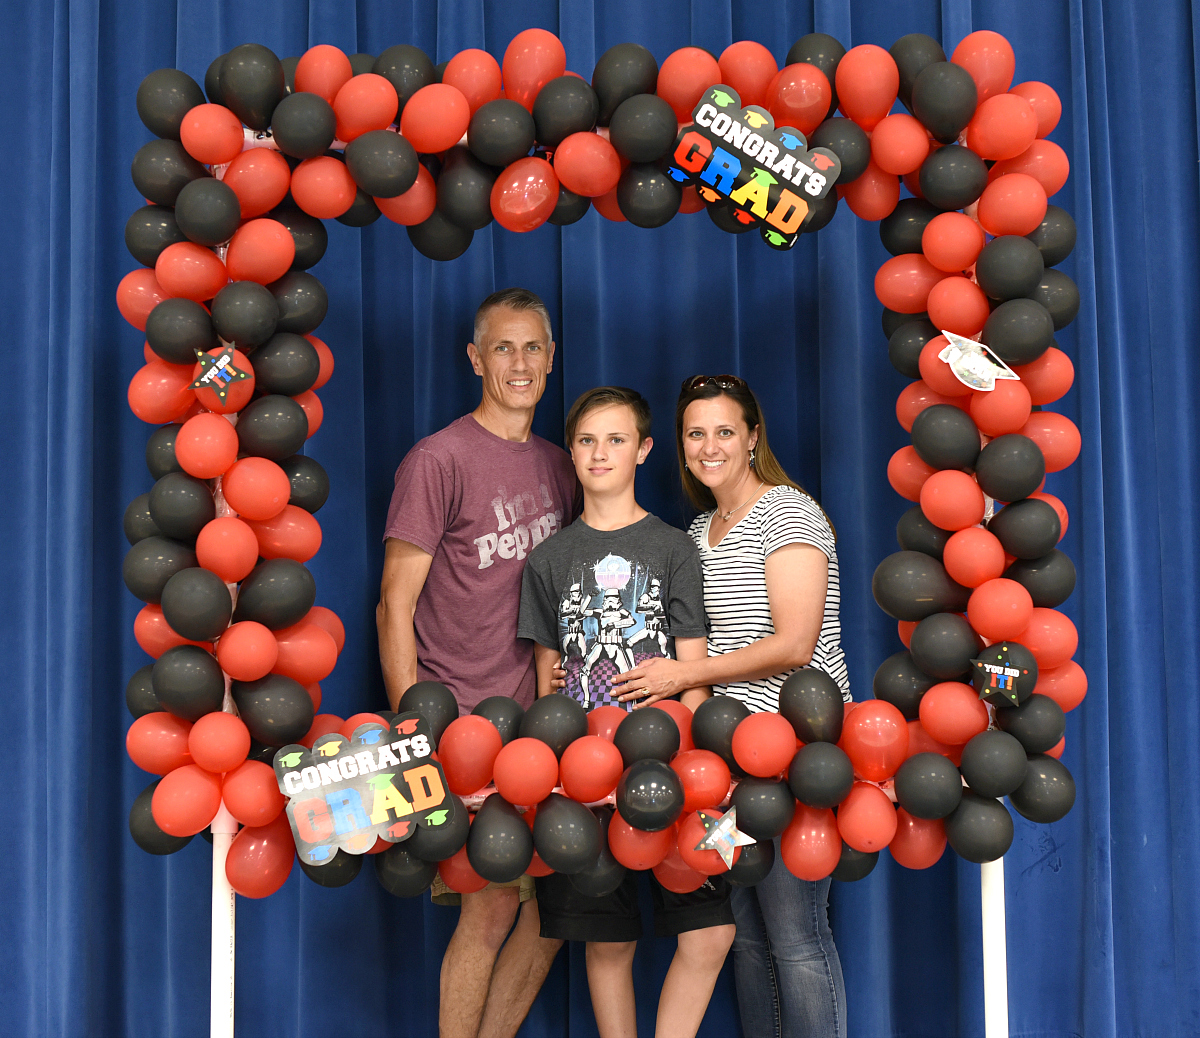 DIY Party Photo Booth with Balloons